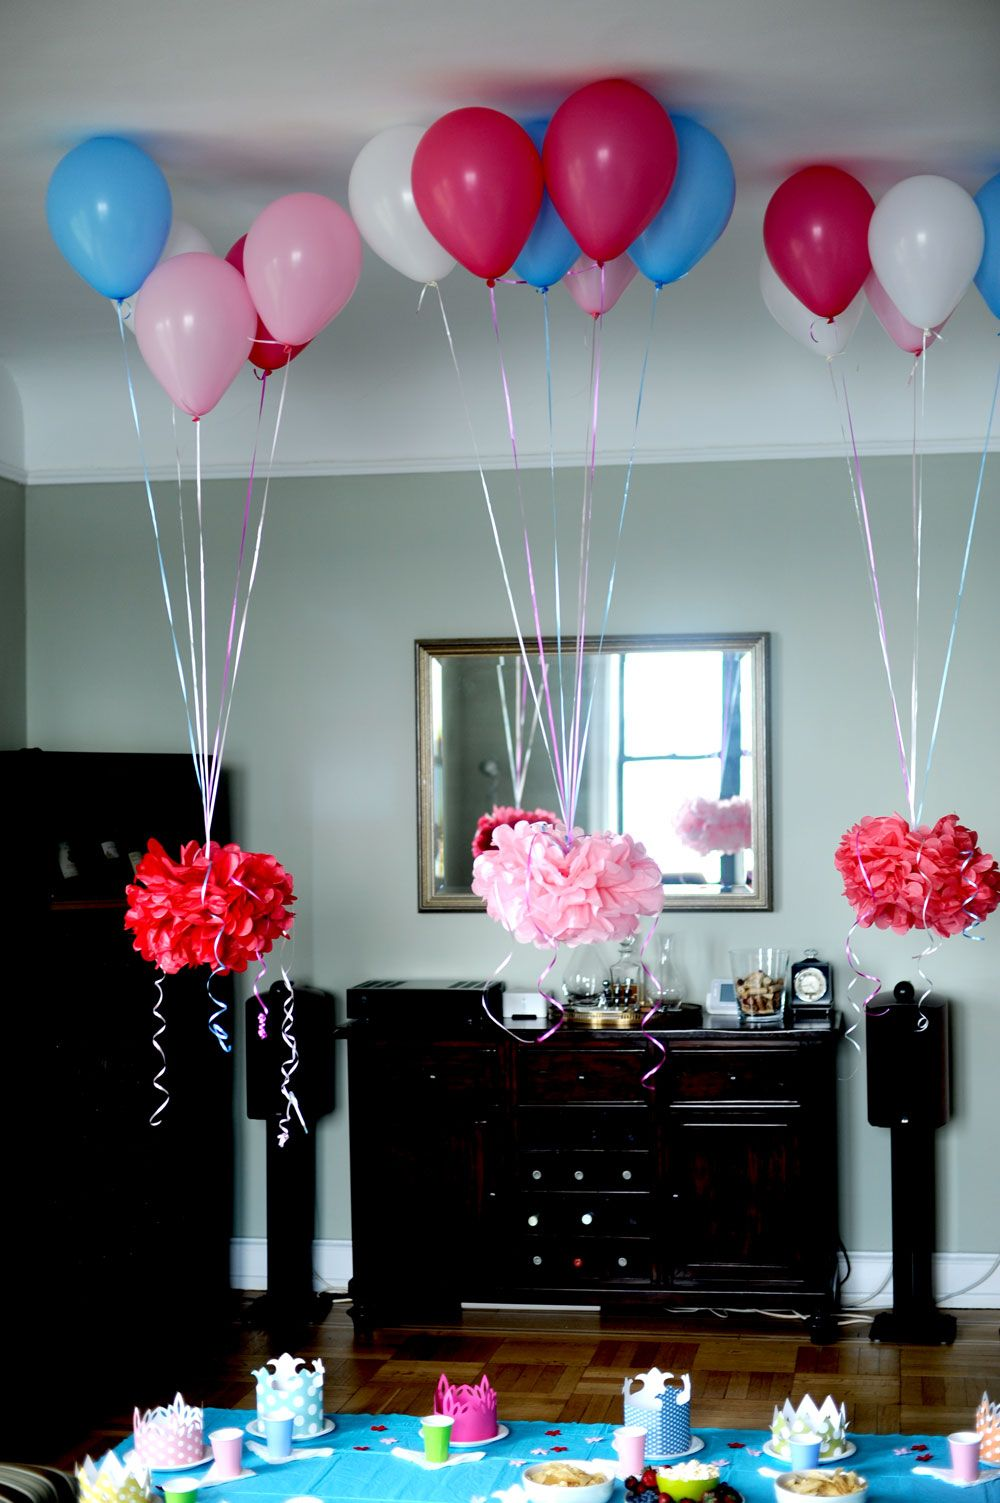 Party decorations using helium balloons to suspend for Helium balloon decoration